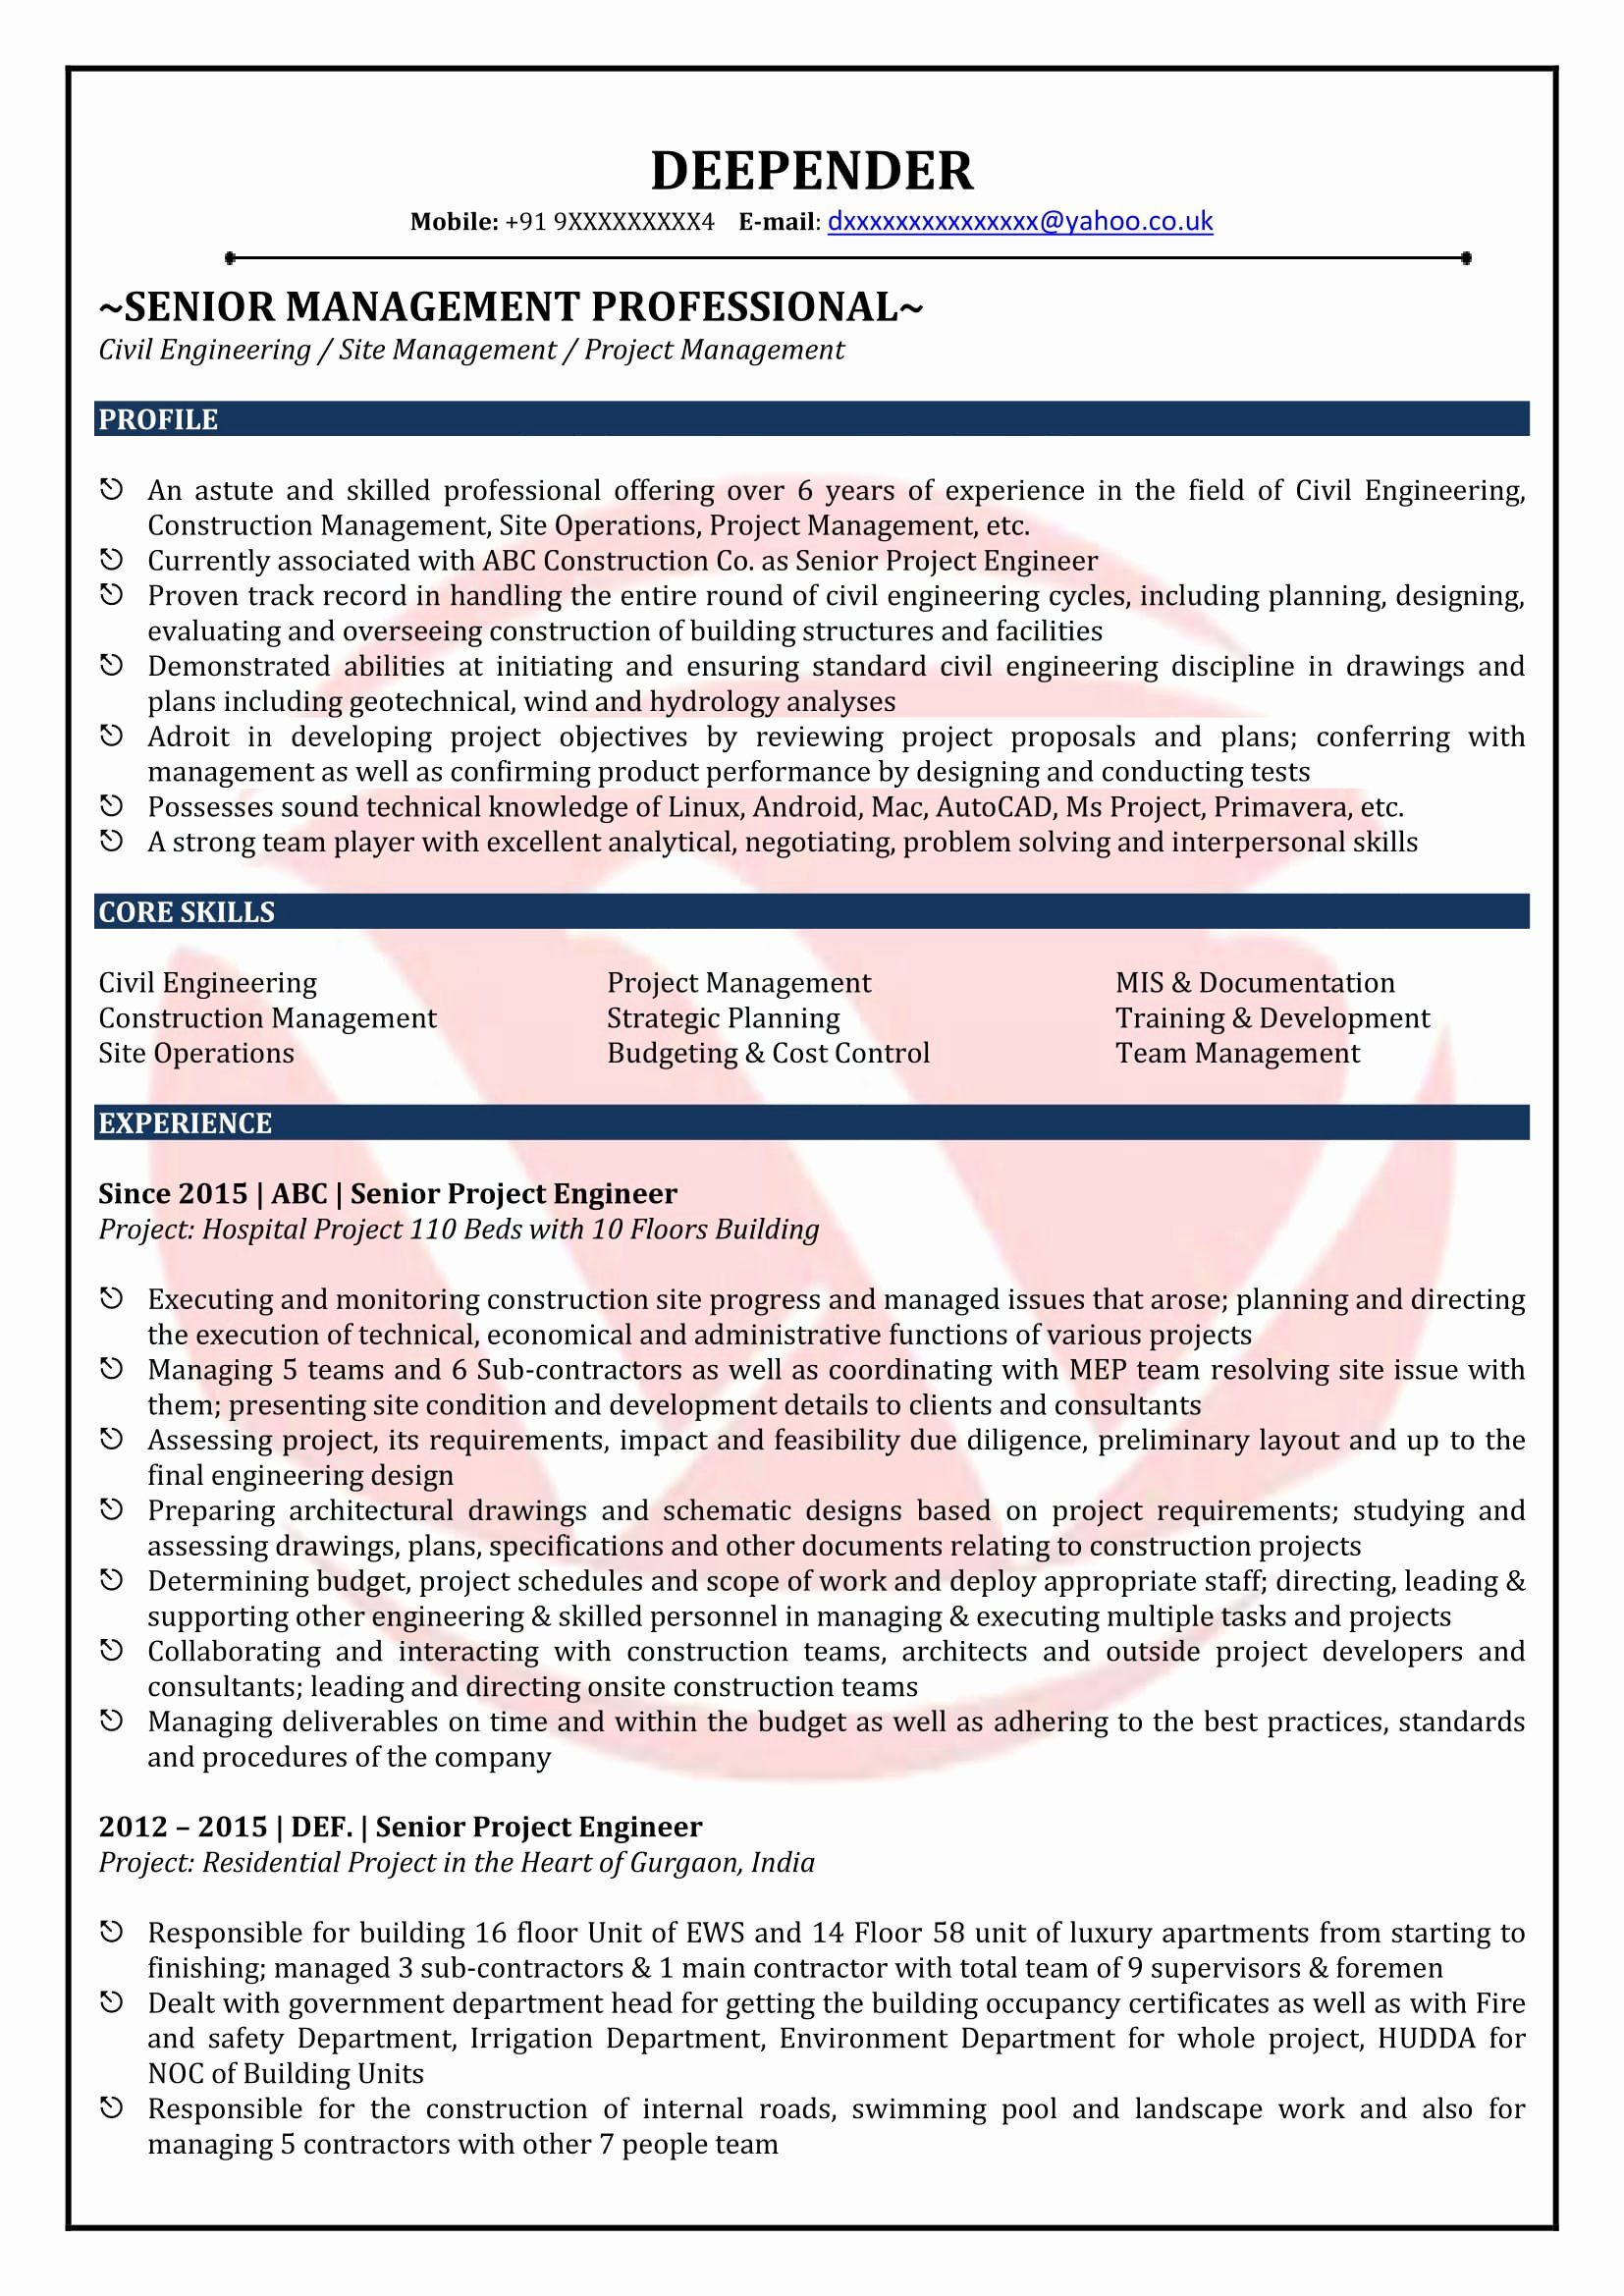 Civil Engineer Intern Resume Luxury Civil Engineer Sample Resumes Download Resume Format Job Resume Examples Civil Engineer Resume Resume Examples